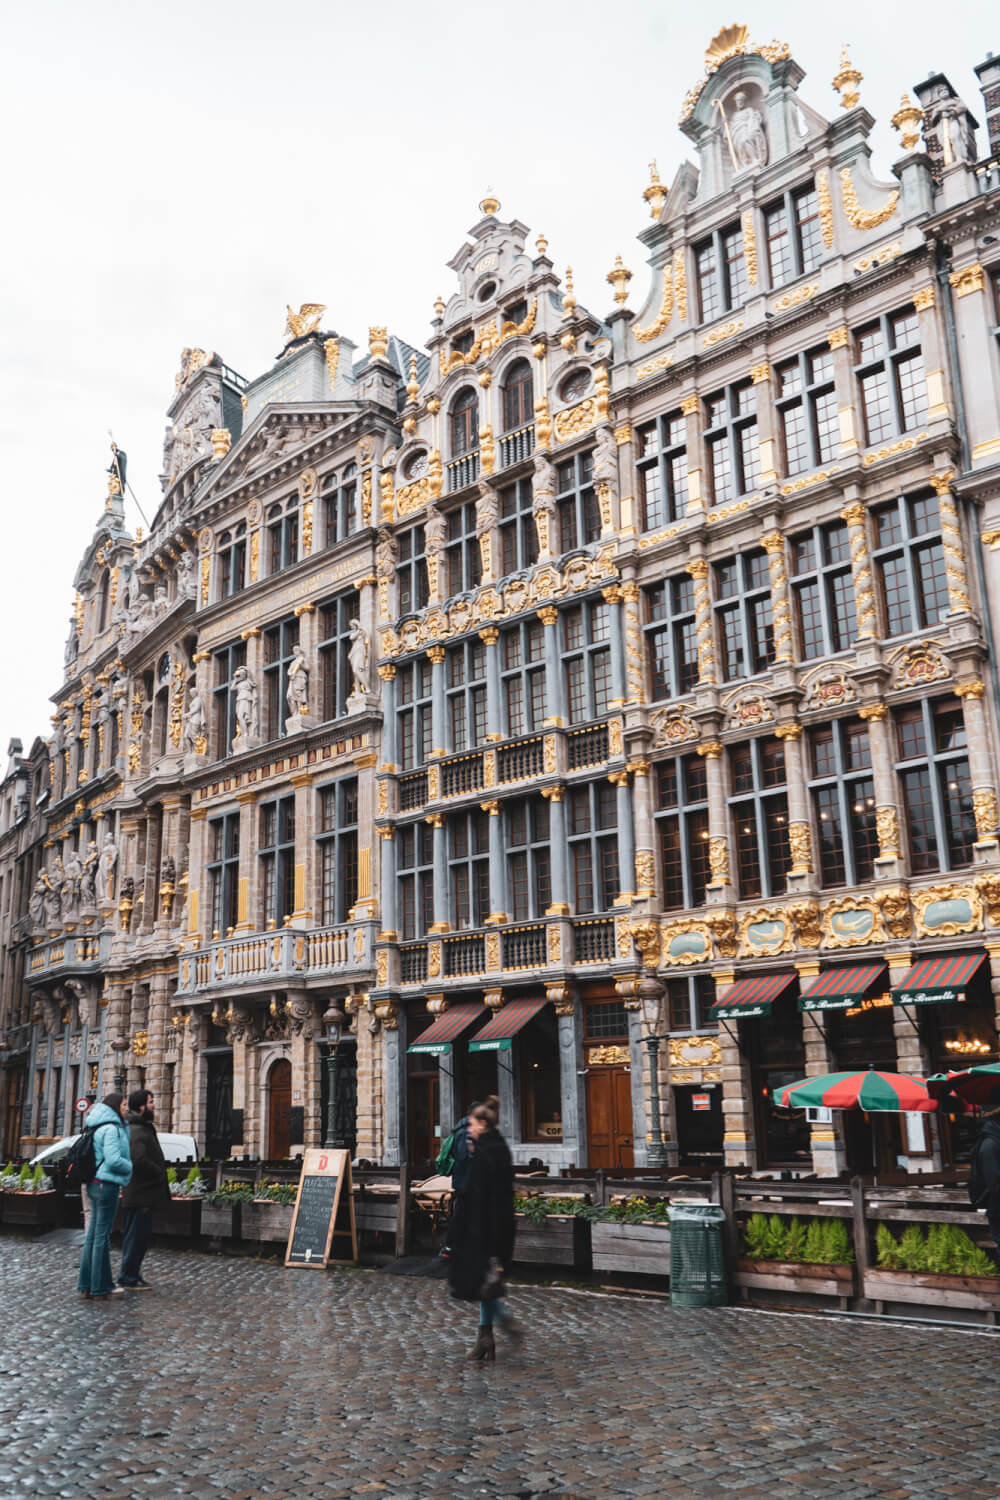 Guildhall buildings in Grand Place in Brussels, Belgium